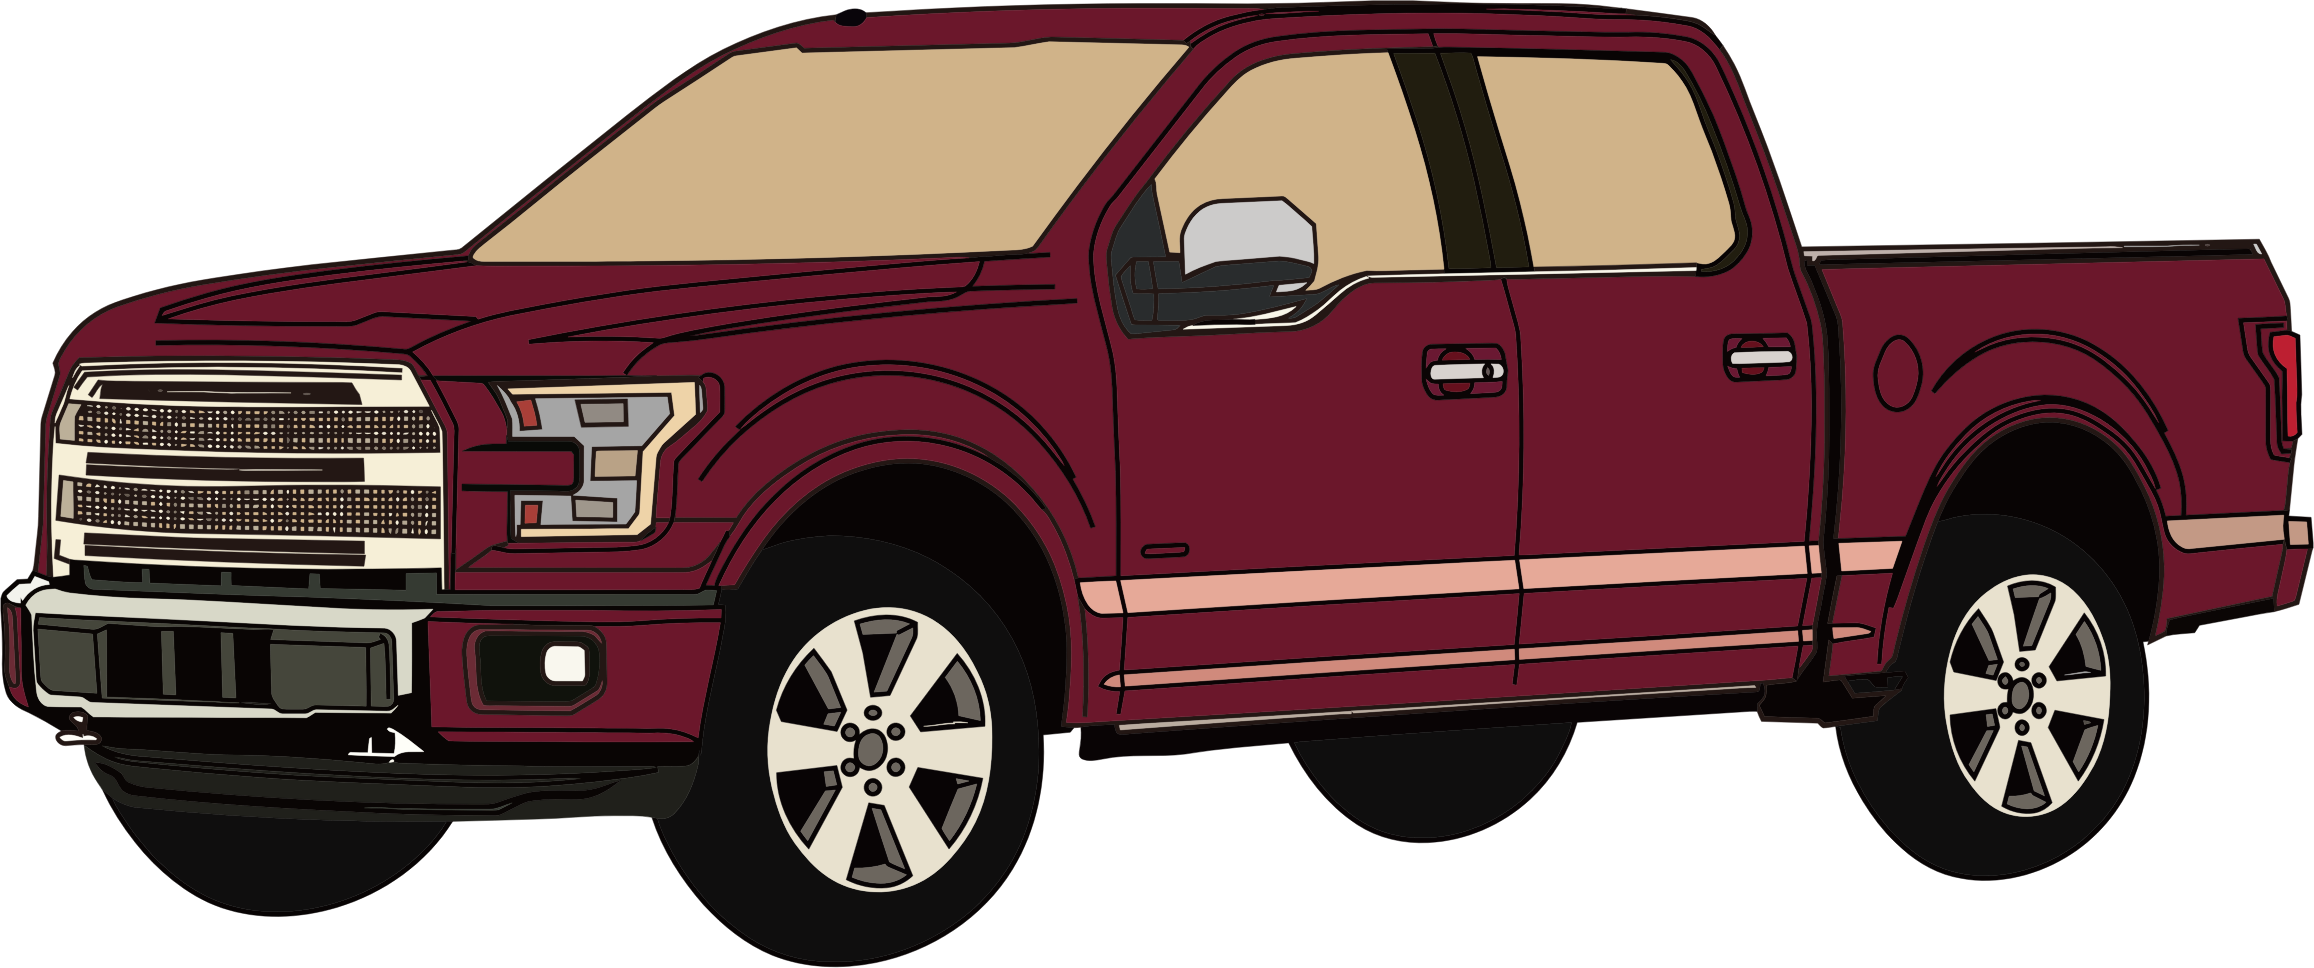 Pickup truck clipart graphic download 39+ Pick Up Truck Clip Art | ClipartLook graphic download